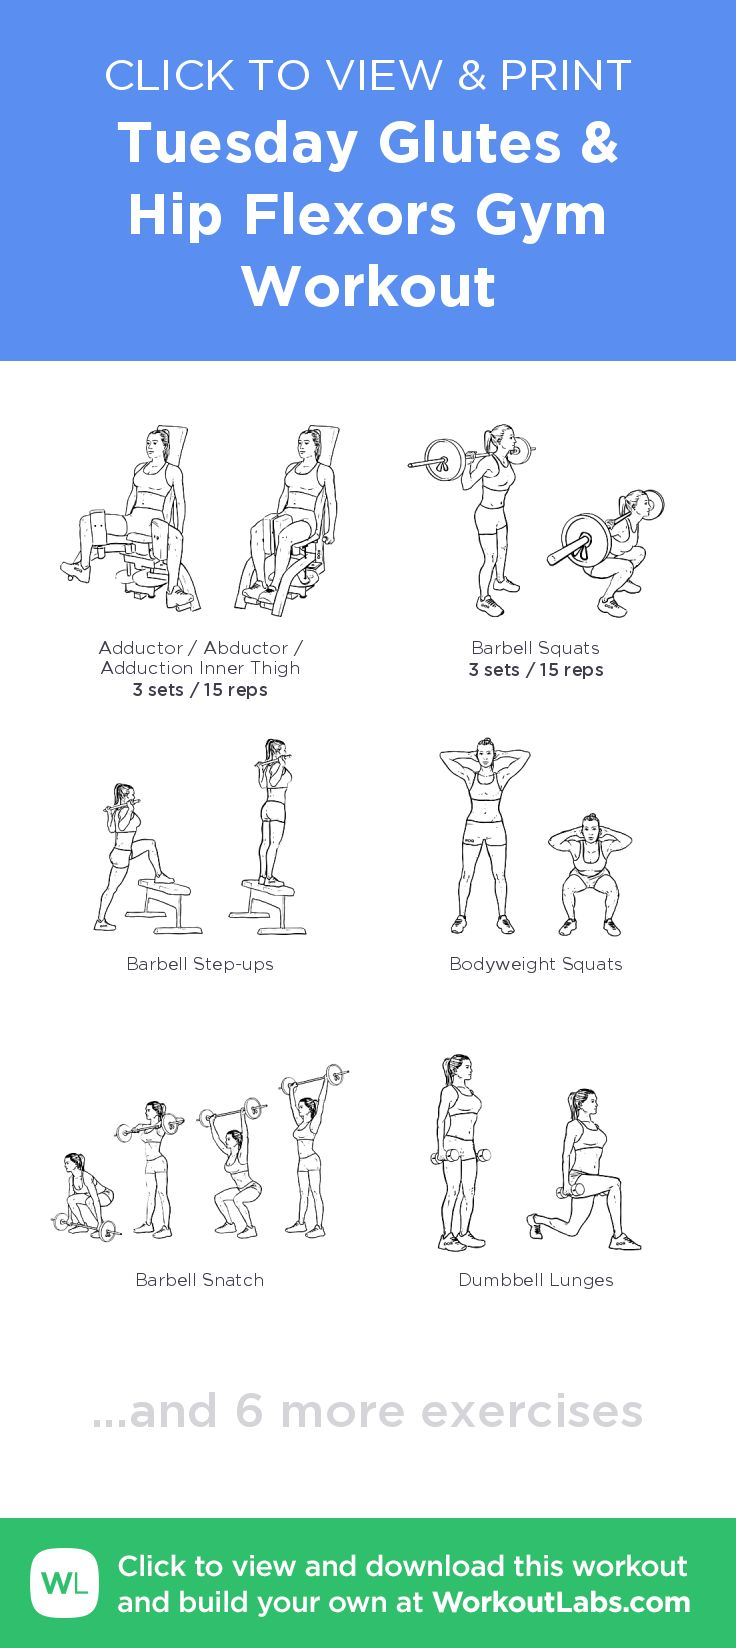 Tuesday Glutes & Hip Flexors Gym Workout – click to view and print this illustrated exercise plan created with #WorkoutLabsFit